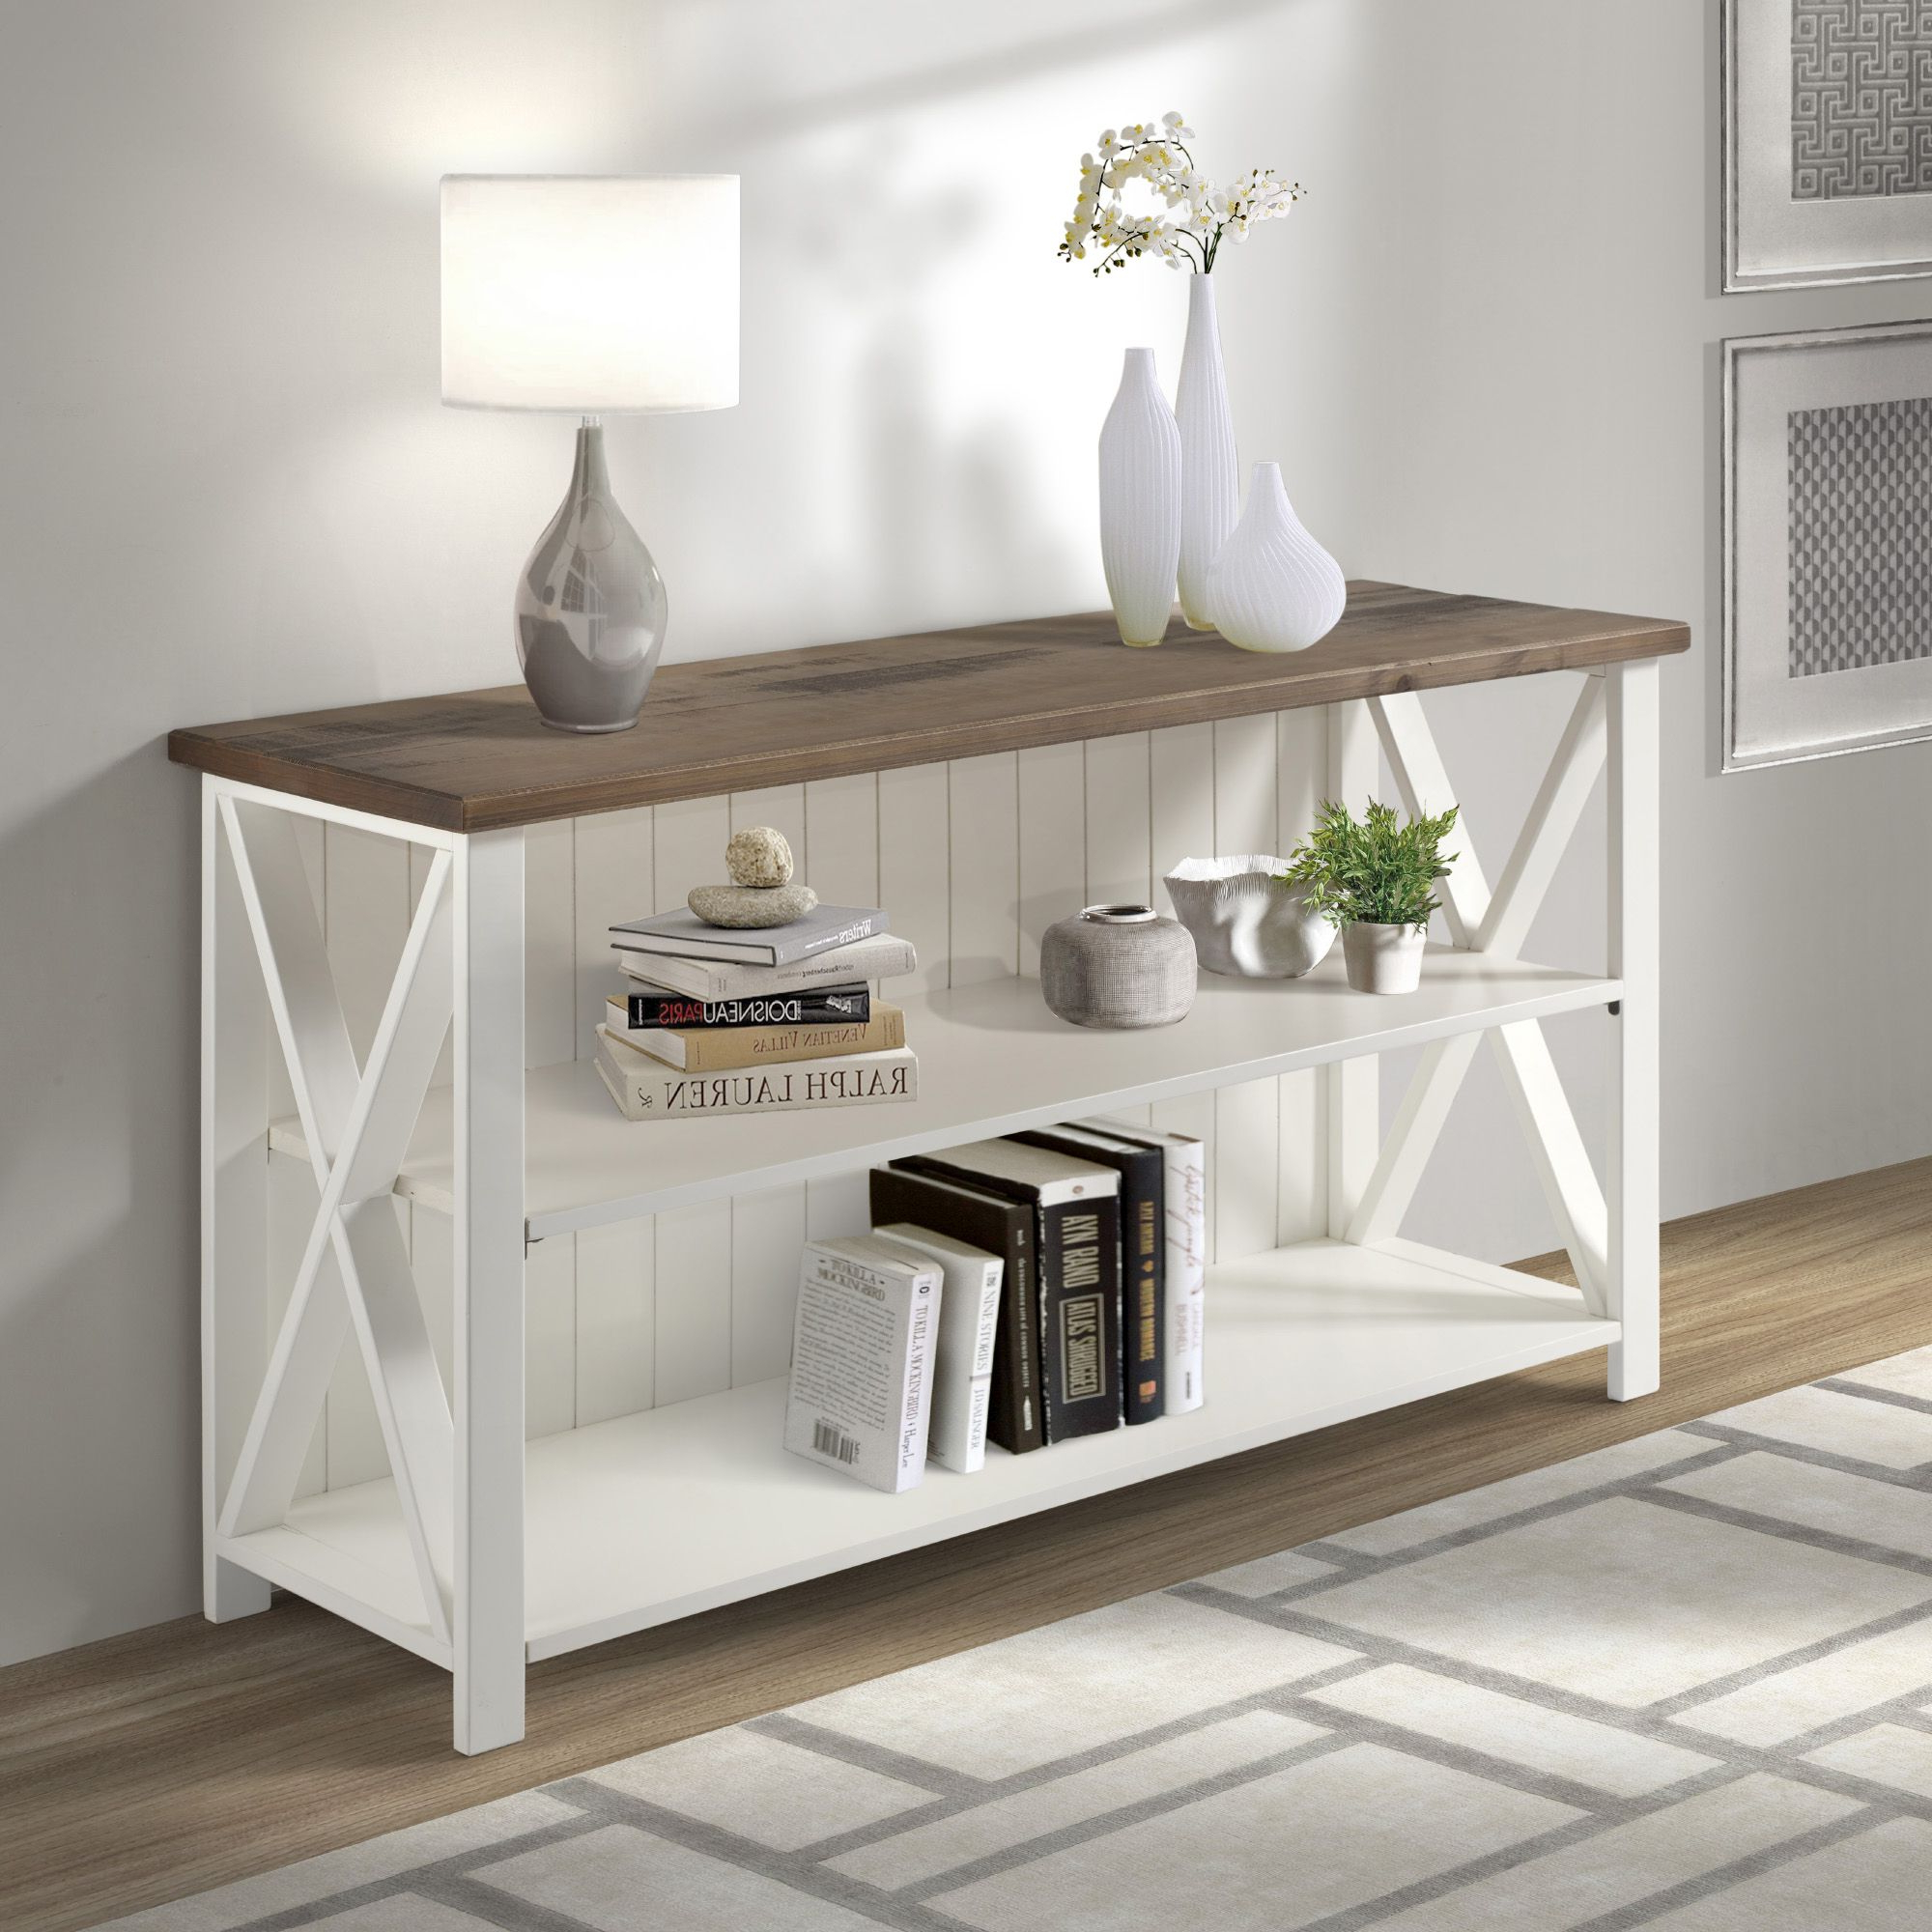 Most Recently Released Woven Paths Franklin Grooved Two Door Tv Stands Inside Woven Paths Solid Wood Storage Console Table, White (View 10 of 10)